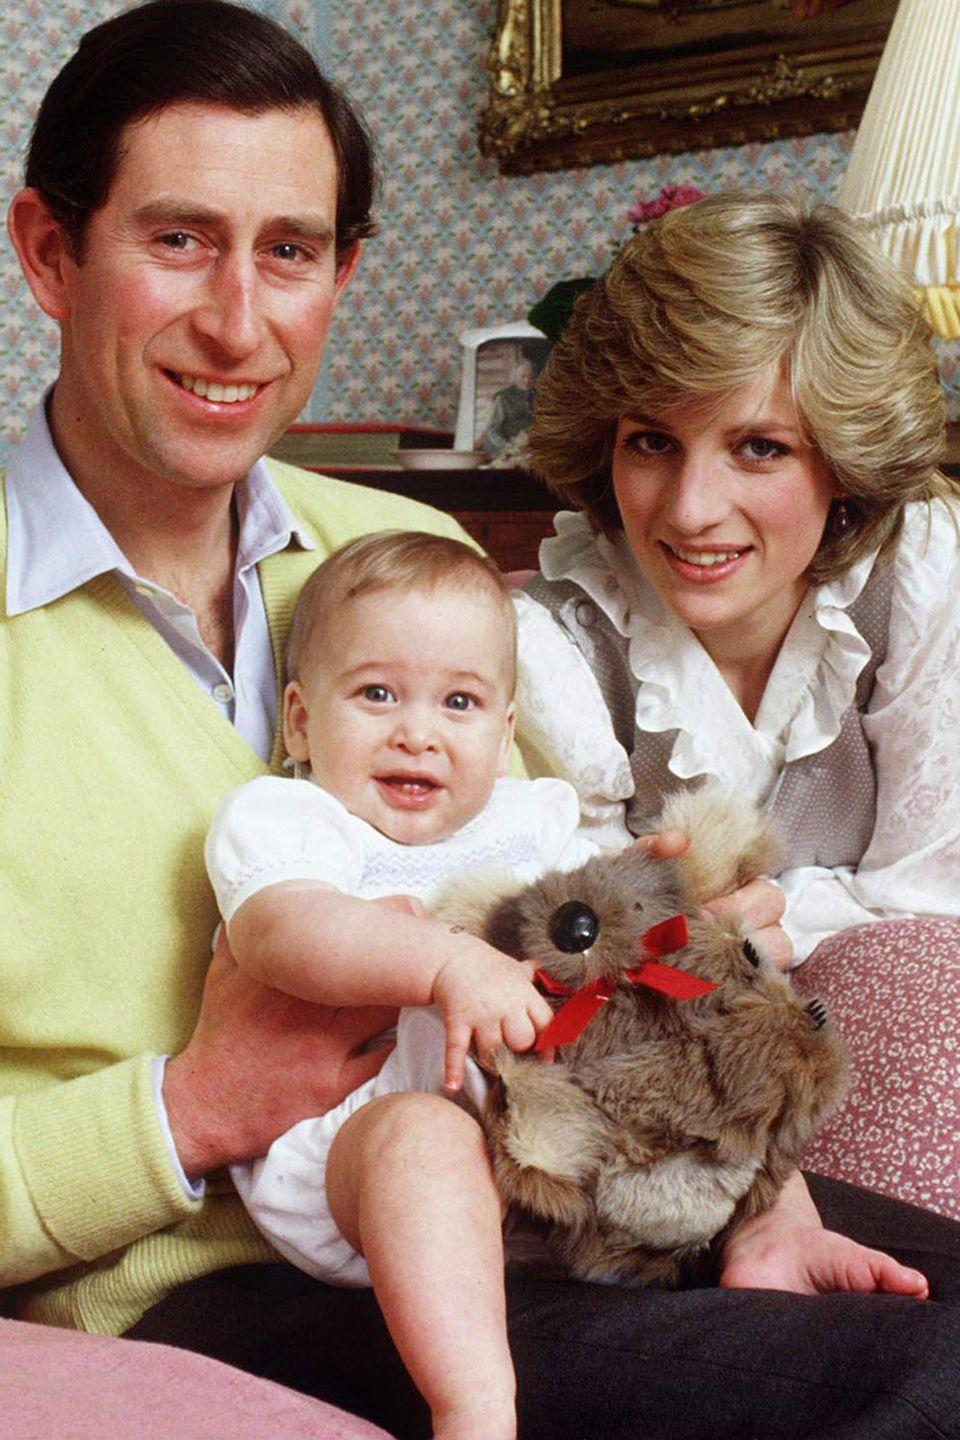 <p>Prince Charles, Princess Diana, and Prince William (holding a toy koala) pose for a family photo at Kensington Palace. </p>